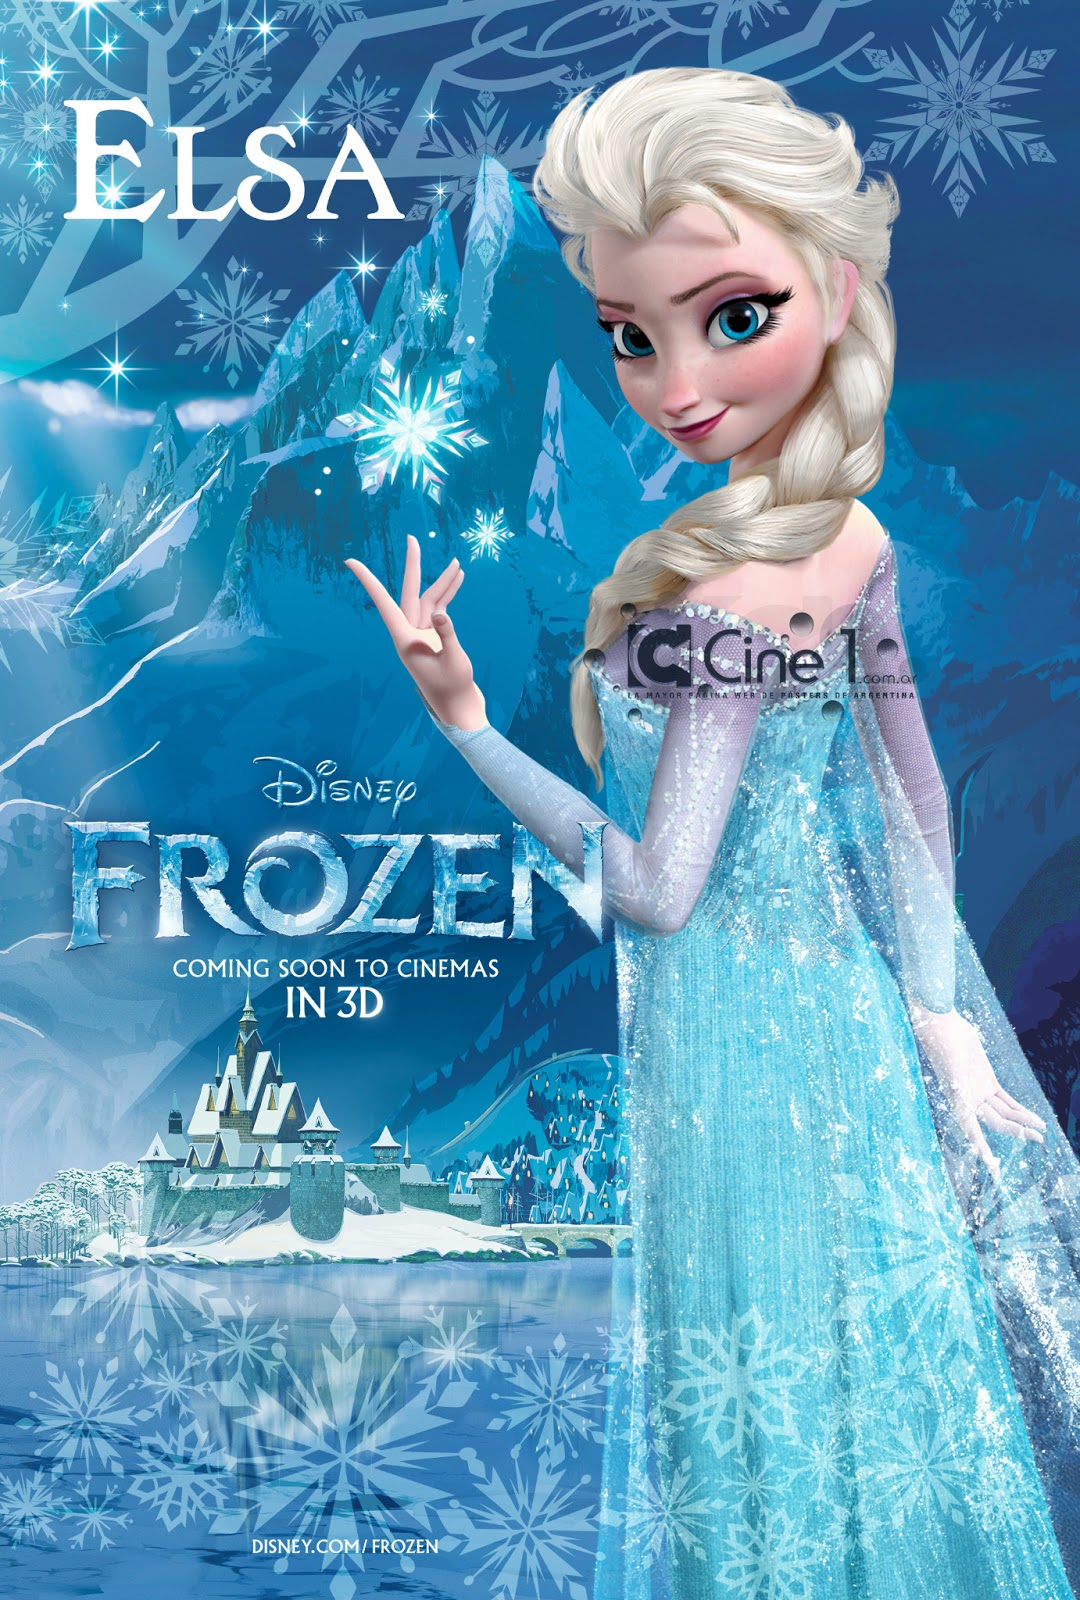 UPDATED: New Frozen Posters Give Us a Look at its Main Characters